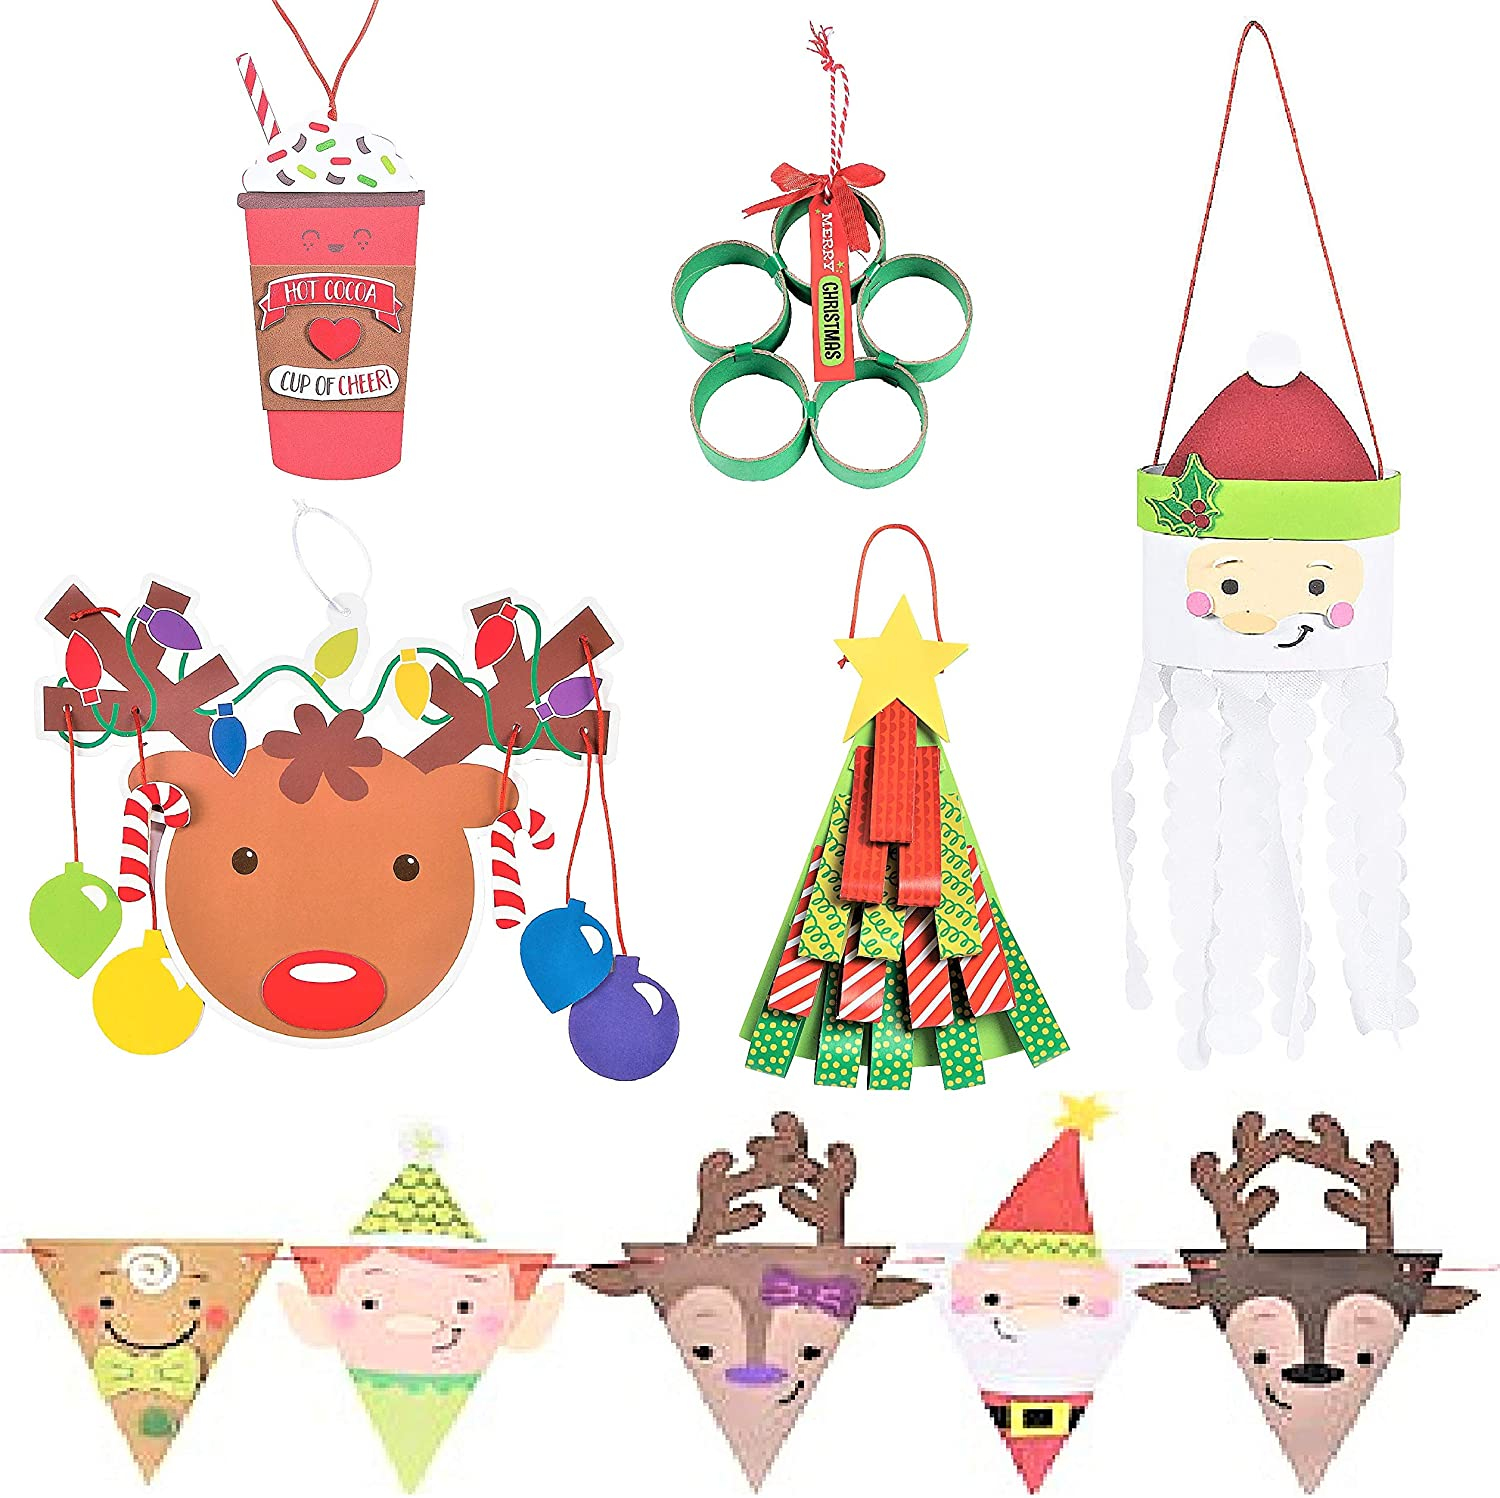 Christmas Holidays Hanging Sign Craft Kits Set - Six (6) Kits - Hot Cocoa Sign, Pennant Banner, Reindeer Mobile, Loop Christmas Tree & More! - 5 - 45 - Winter Kids Crafts Family Activities - Bundle